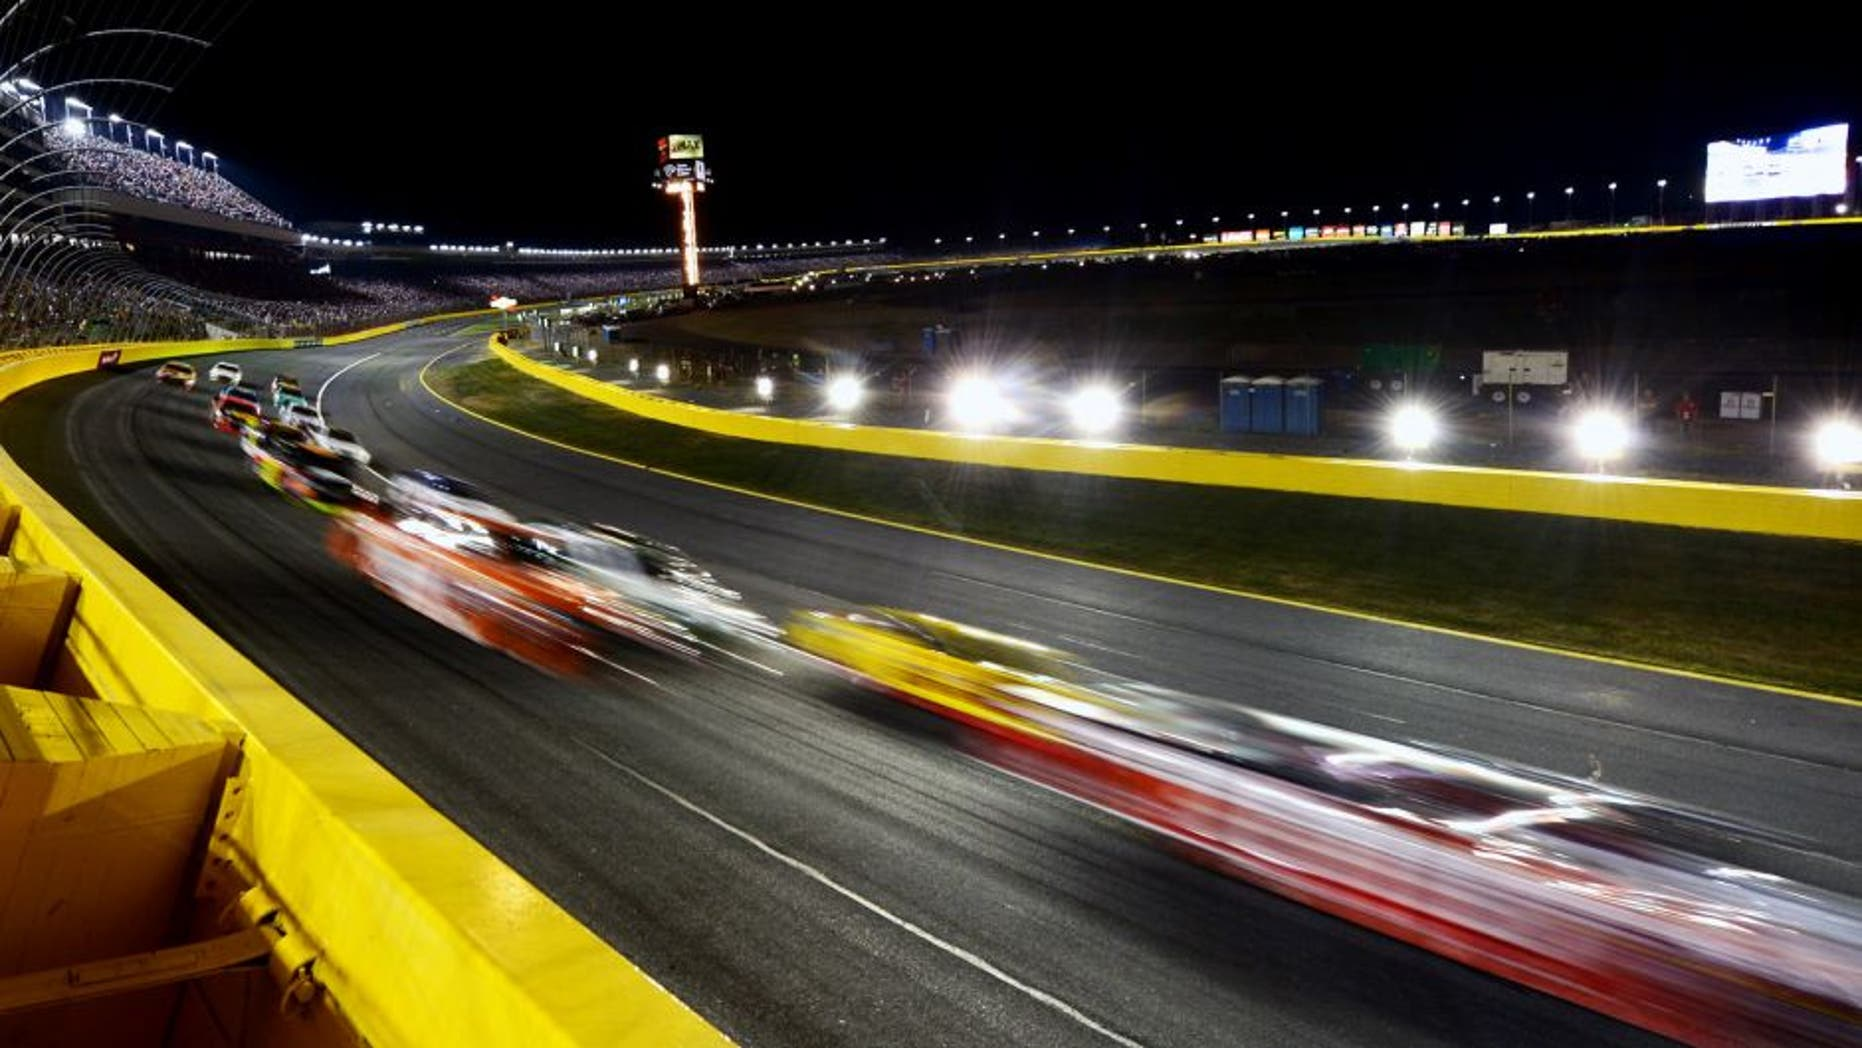 CHARLOTTE, NC - MAY 16: Cars race during the NASCAR Sprint Cup Series Sprint All-Star Race at Charlotte Motor Speedway on May 16, 2015 in Charlotte, North Carolina. (Photo by Drew Hallowell/Getty Images)